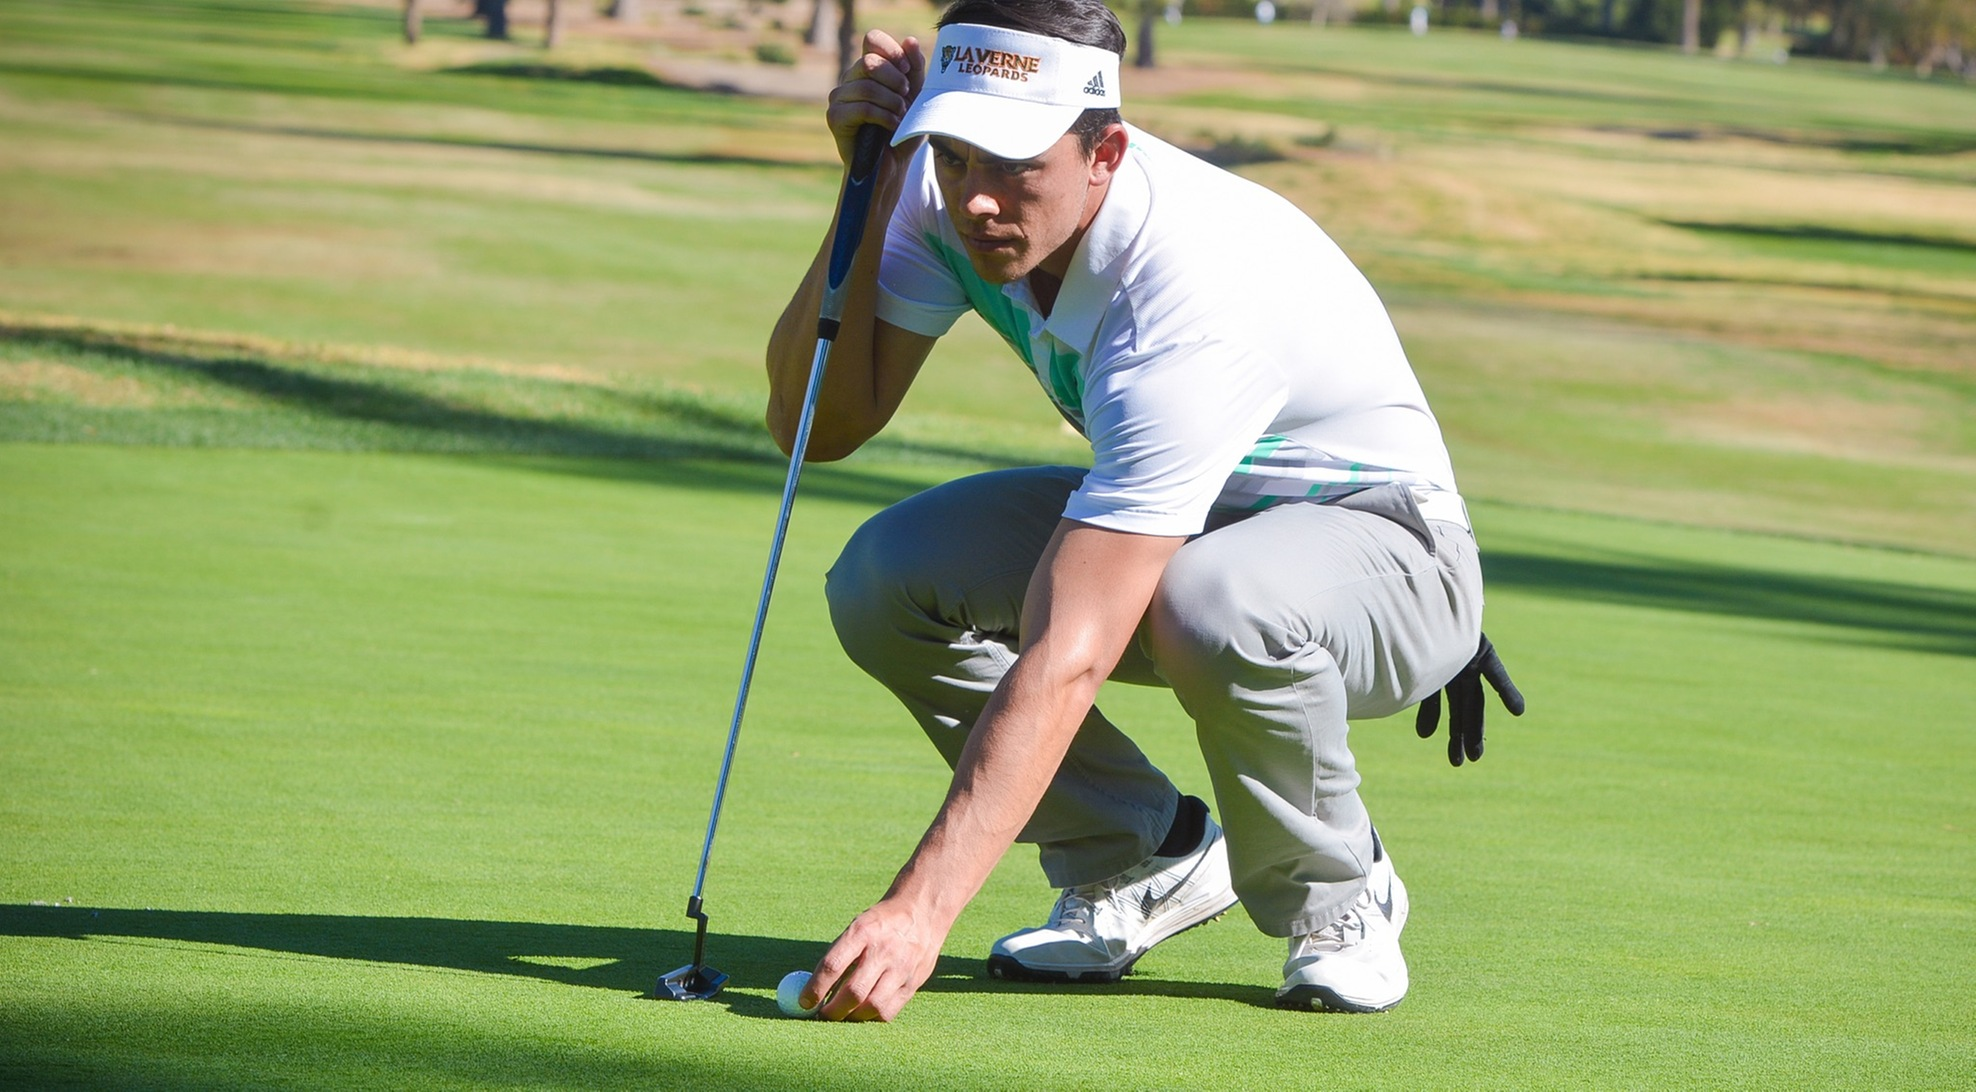 Men's Golf finishes ninth at Folino Invitational